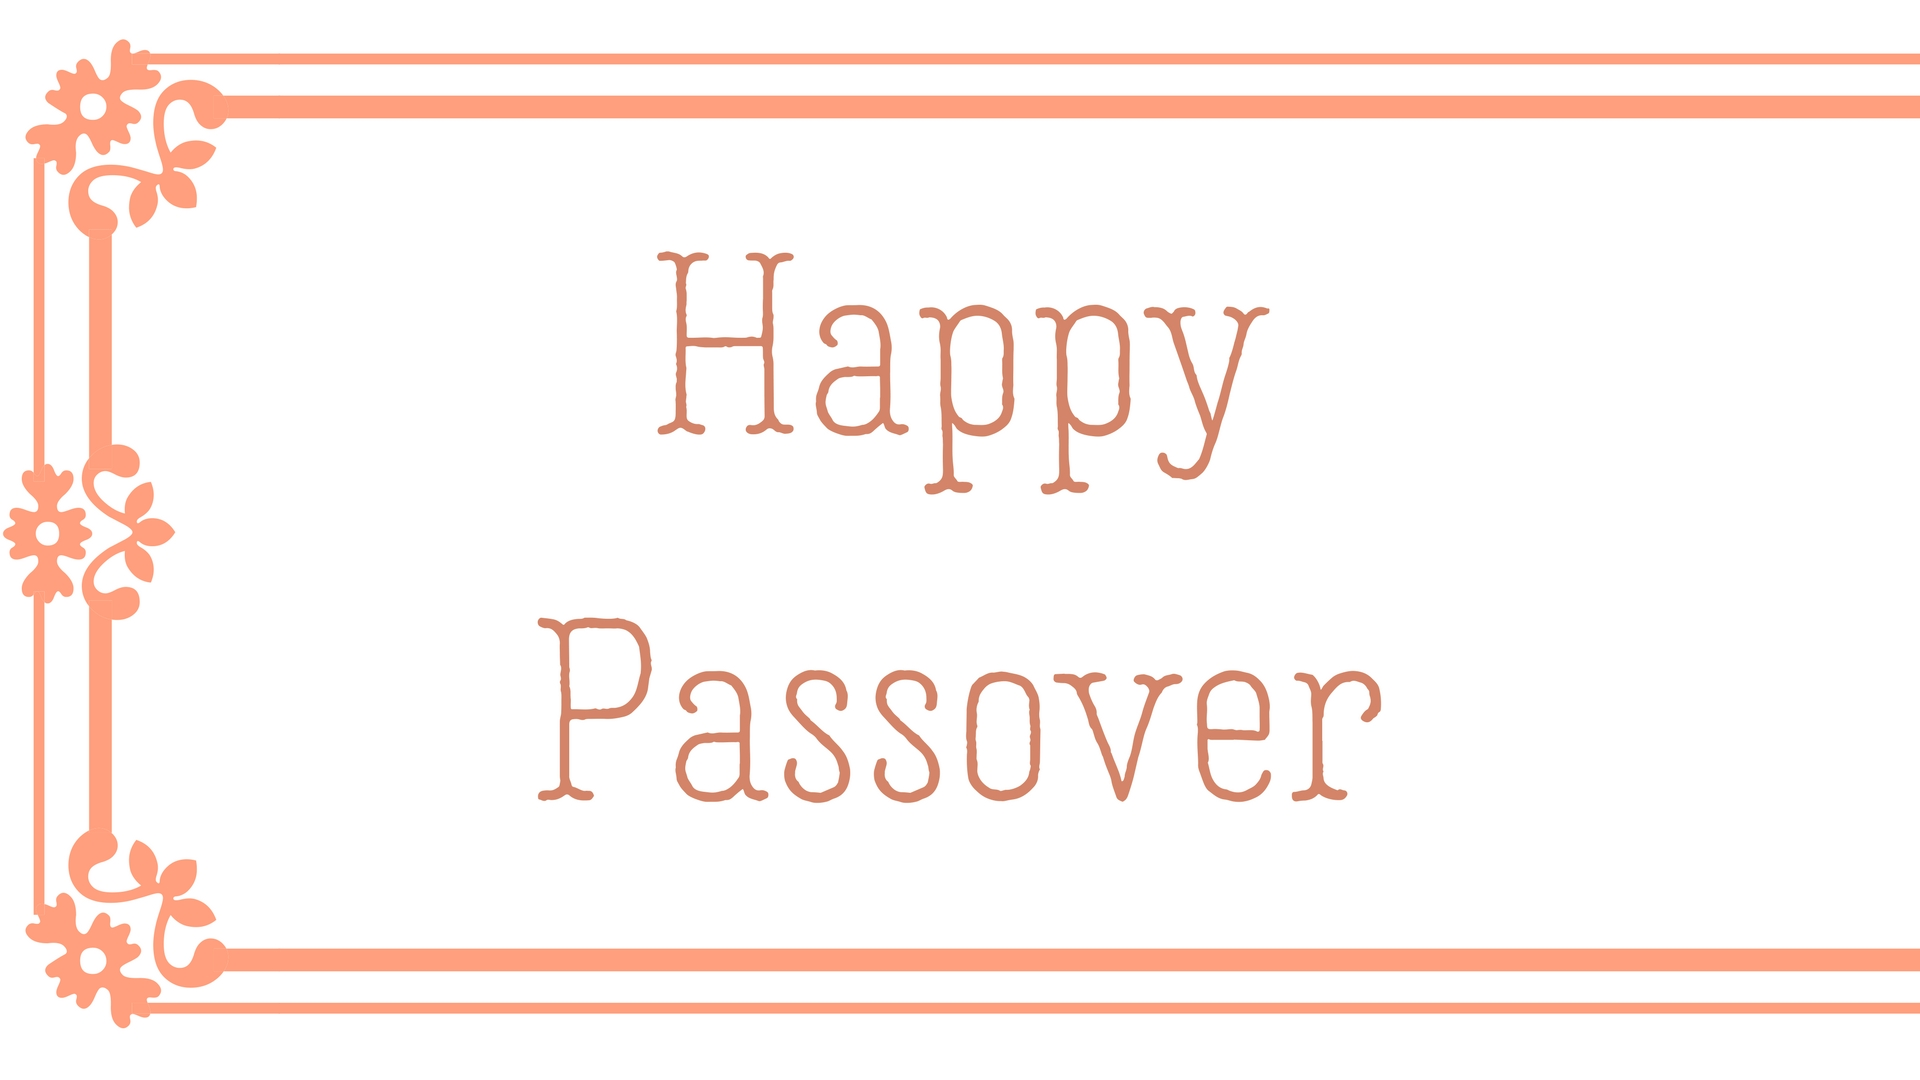 Happy Passover Rectangle Frame Greeting Card Postcard 27